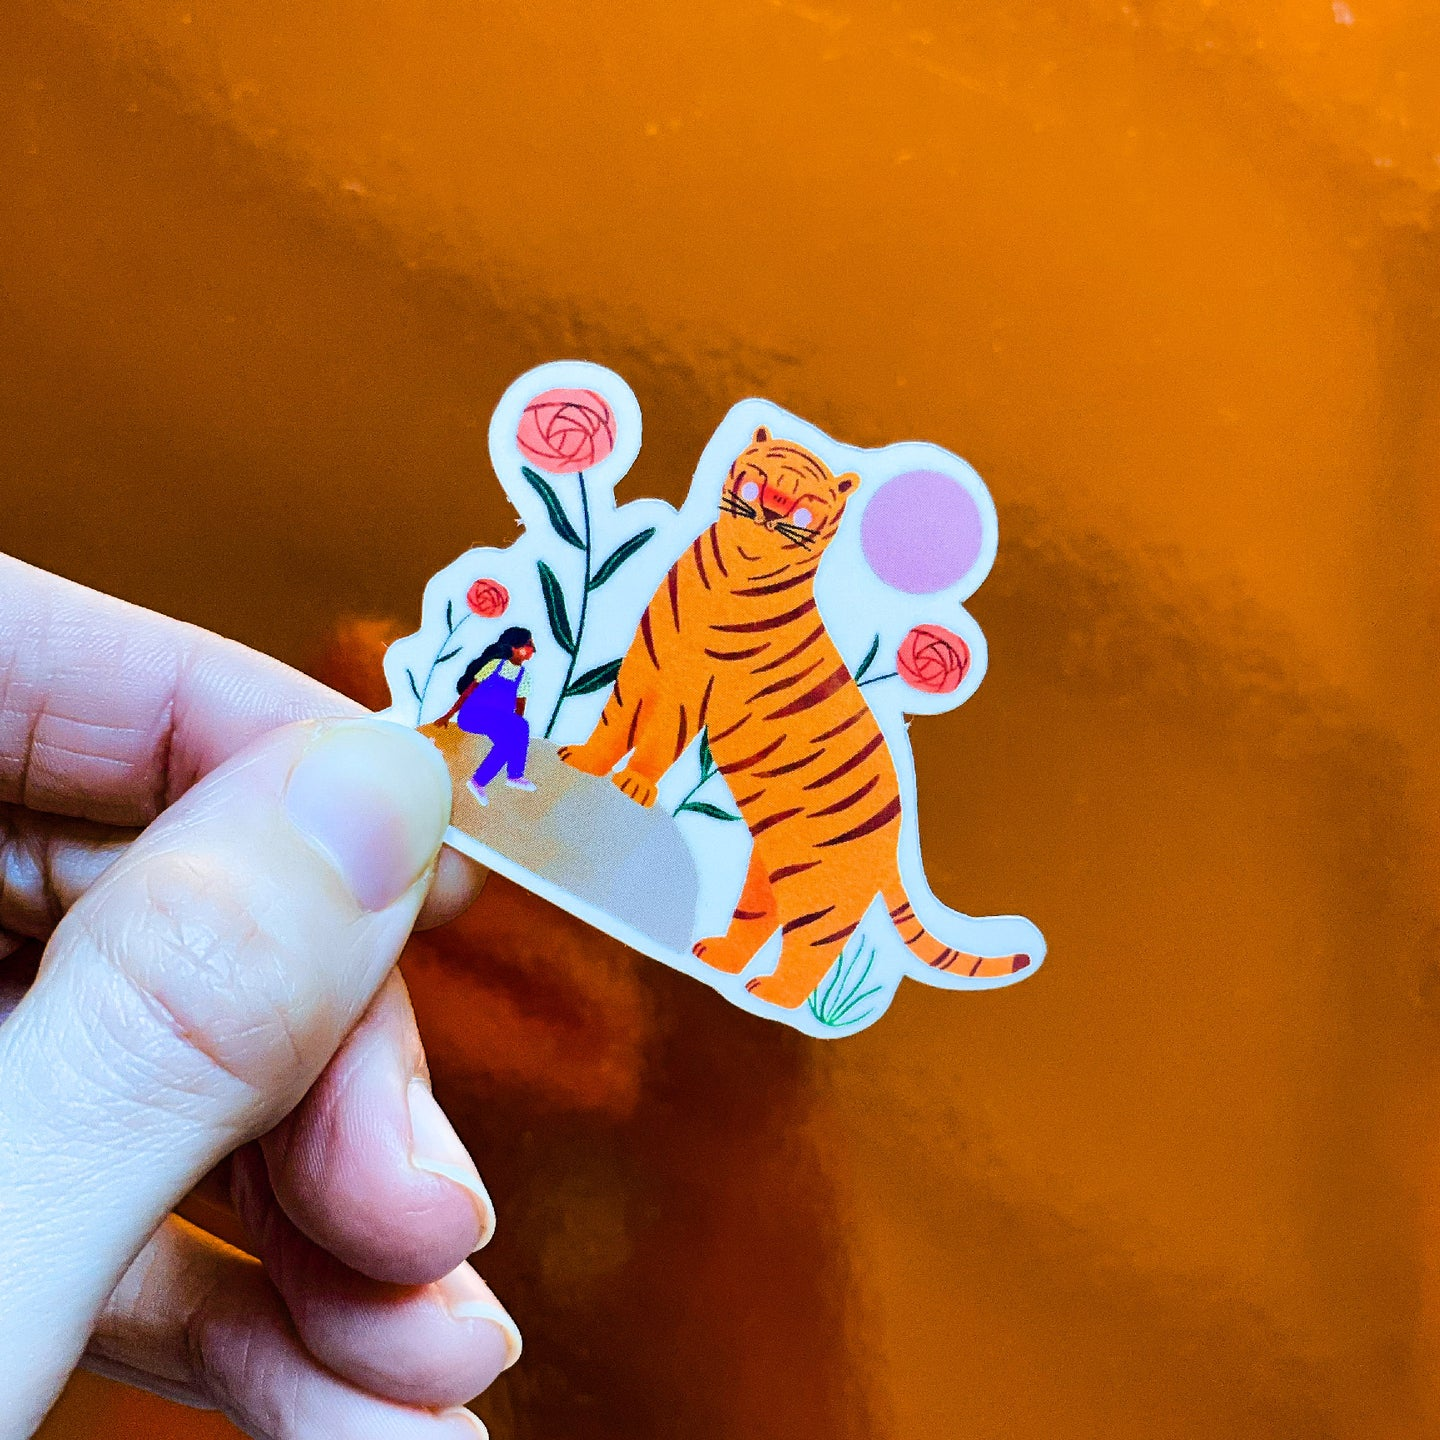 Sticker - Giant tiger